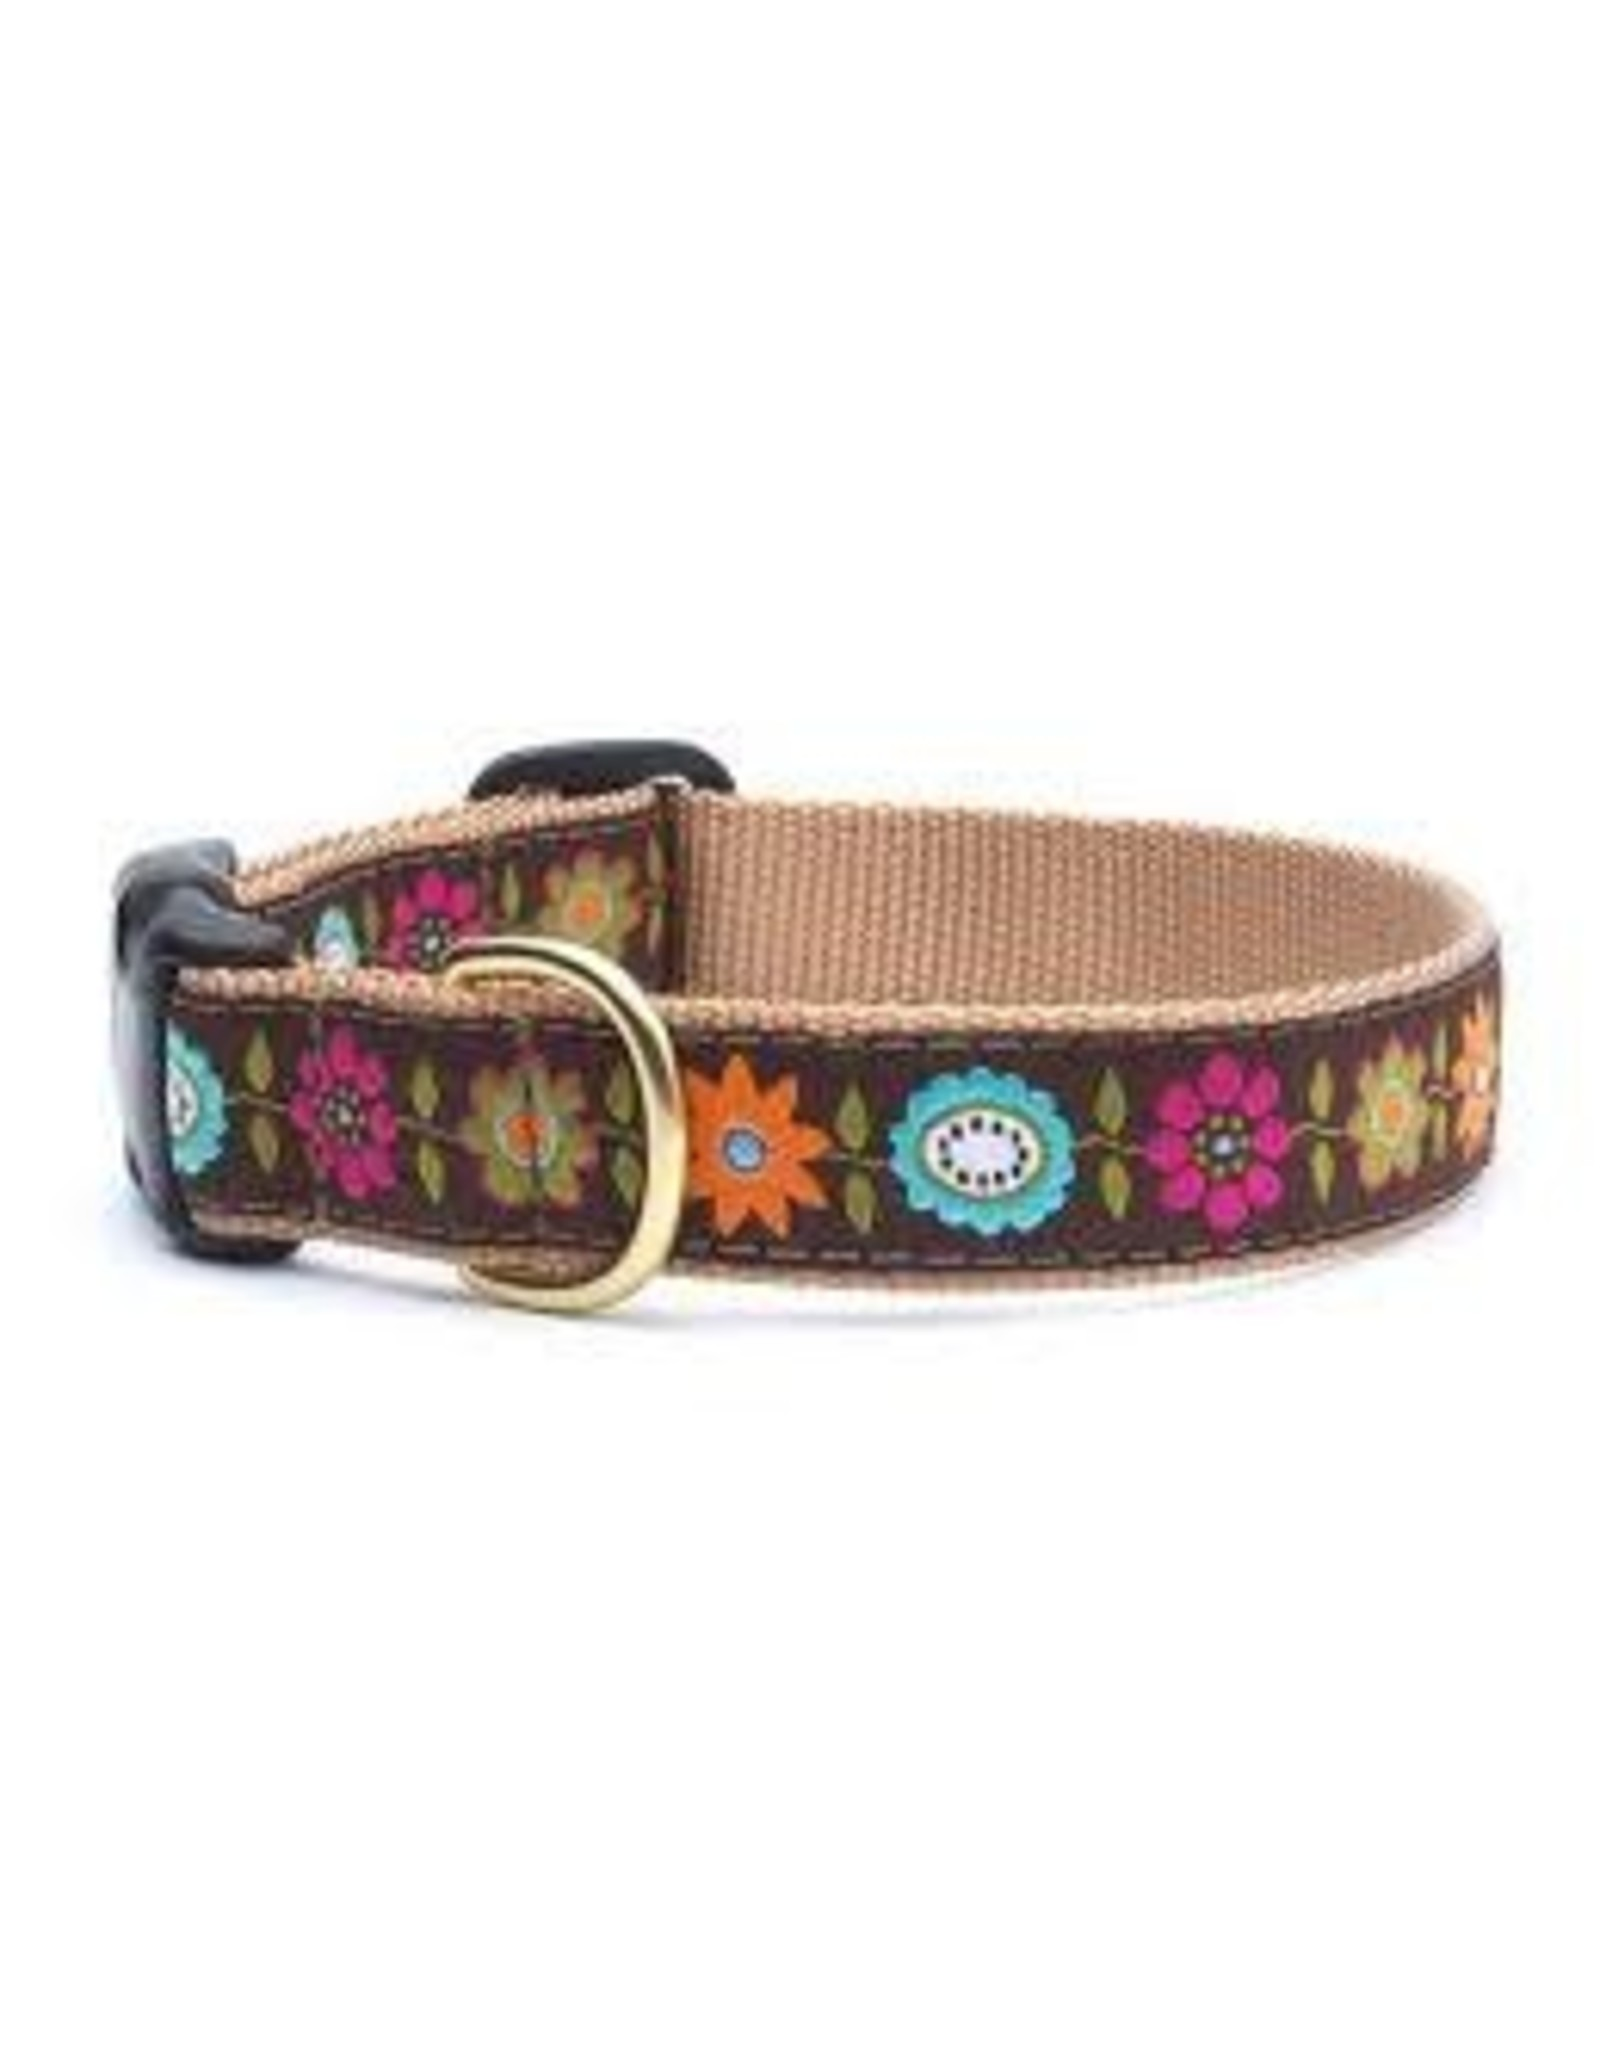 UP COUNTRY UP COUNTRY BELLA FLORAL DOG COLLAR MED WIDE